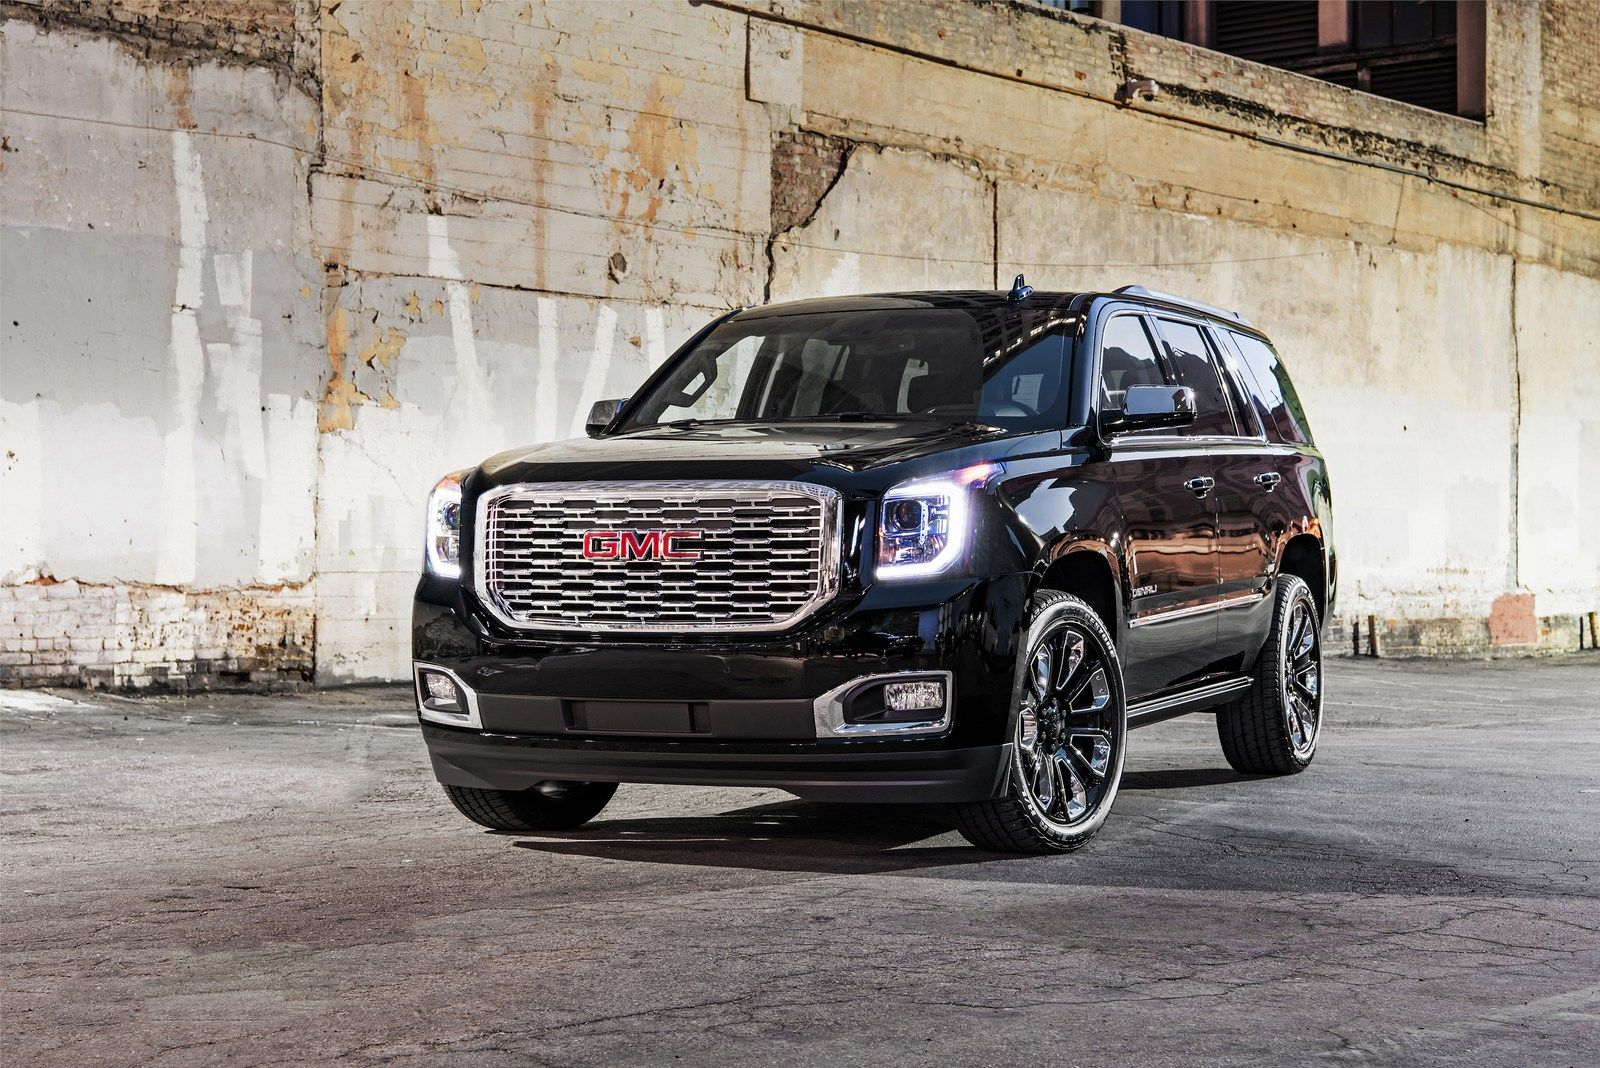 2018 Gmc Yukon Denali Ultimate Black Edition Brings The Bling To La In 2020 Gmc Yukon Denali Gmc Denali Gmc Yukon